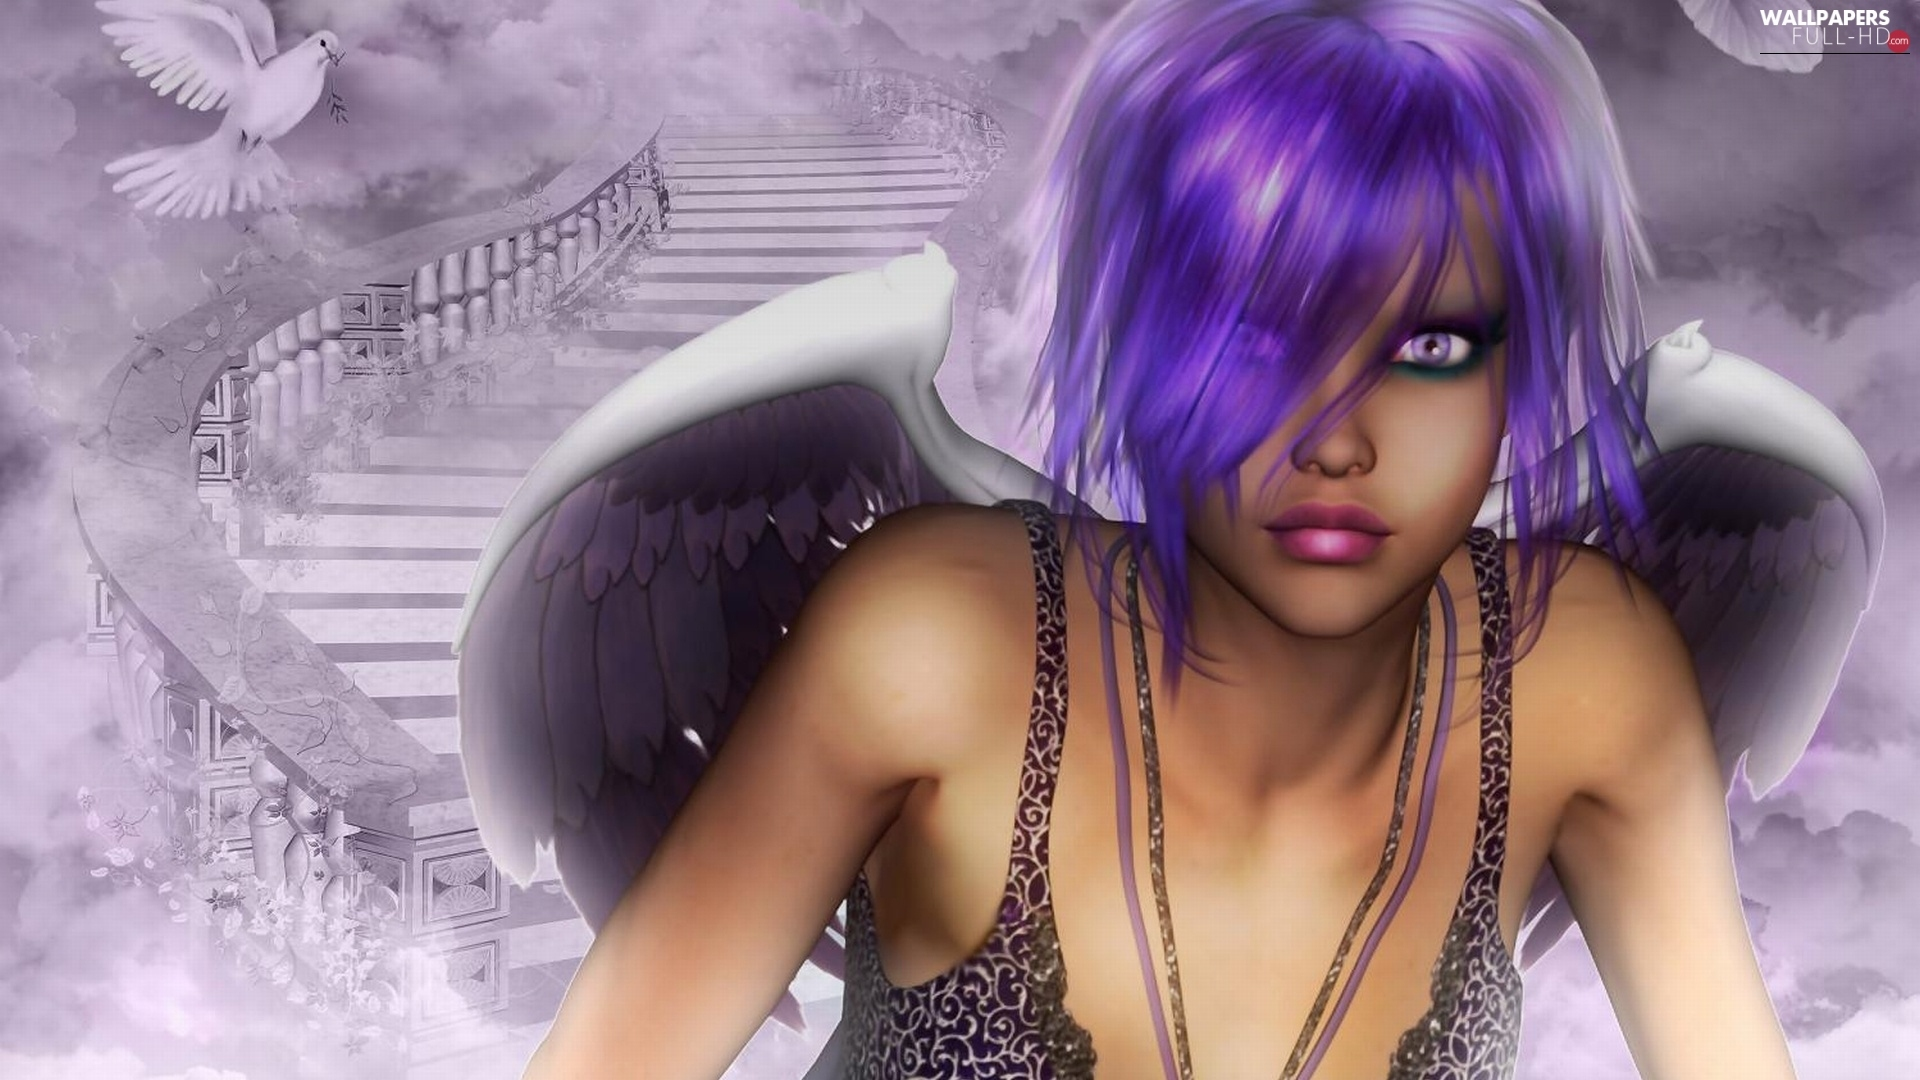 Stairs, Hair, angel, purple